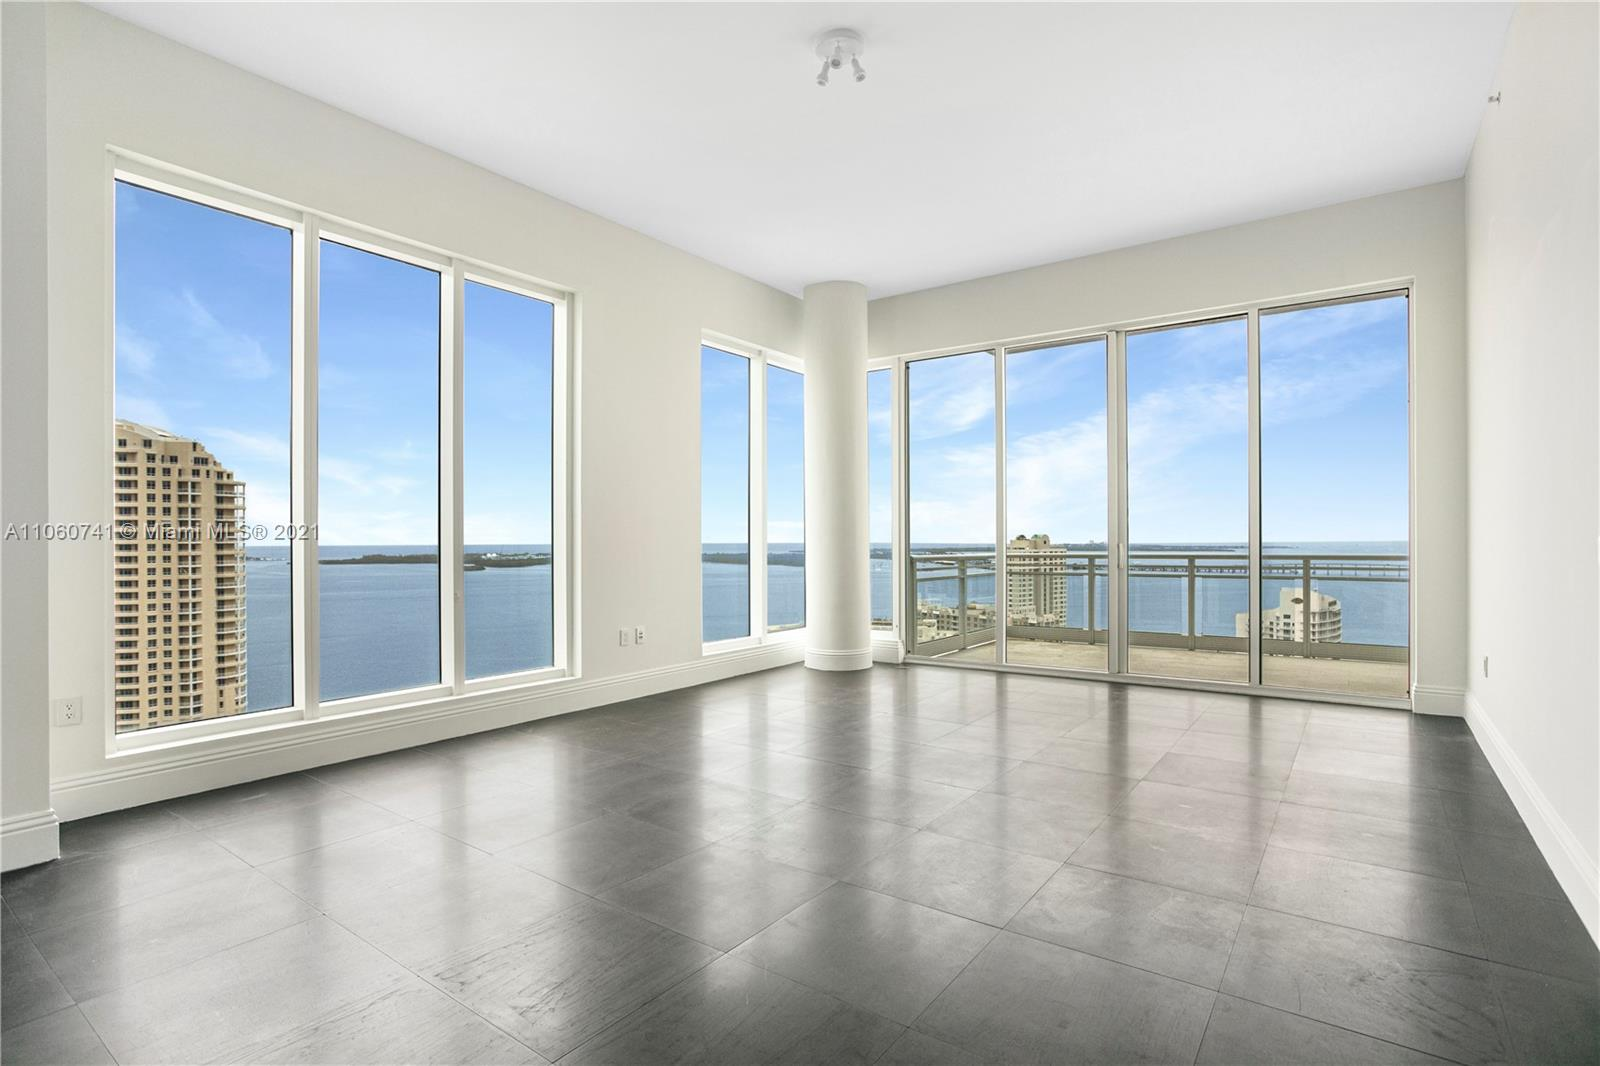 Stunning unit in Asia, in exclusive Brickell Key Island! Corner unit features 180-degree breathtaking view of the Ocean, Biscayne Bay and Miami's lively exciting skyline. Private elevator entrance, 12 -foot ceiling. You will witness every day's beautiful sunrise and sunset from each of its four large balconies. Gourmet Kitchen has Italian countertop, wine cooler, and built-in espresso machine. Miele oven complements the subzero refrigerator with integrated microwave and ceramic cooktop. 2 assigned parking spaces and storage included. The building amenities include a 24/7 concierge, tennis and basketball/racquetball court, swimming pool, jacuzzi, gym and party room. The island offers a convenience store, dry cleaning and hair salon. Easy access to the islands walk/run path.